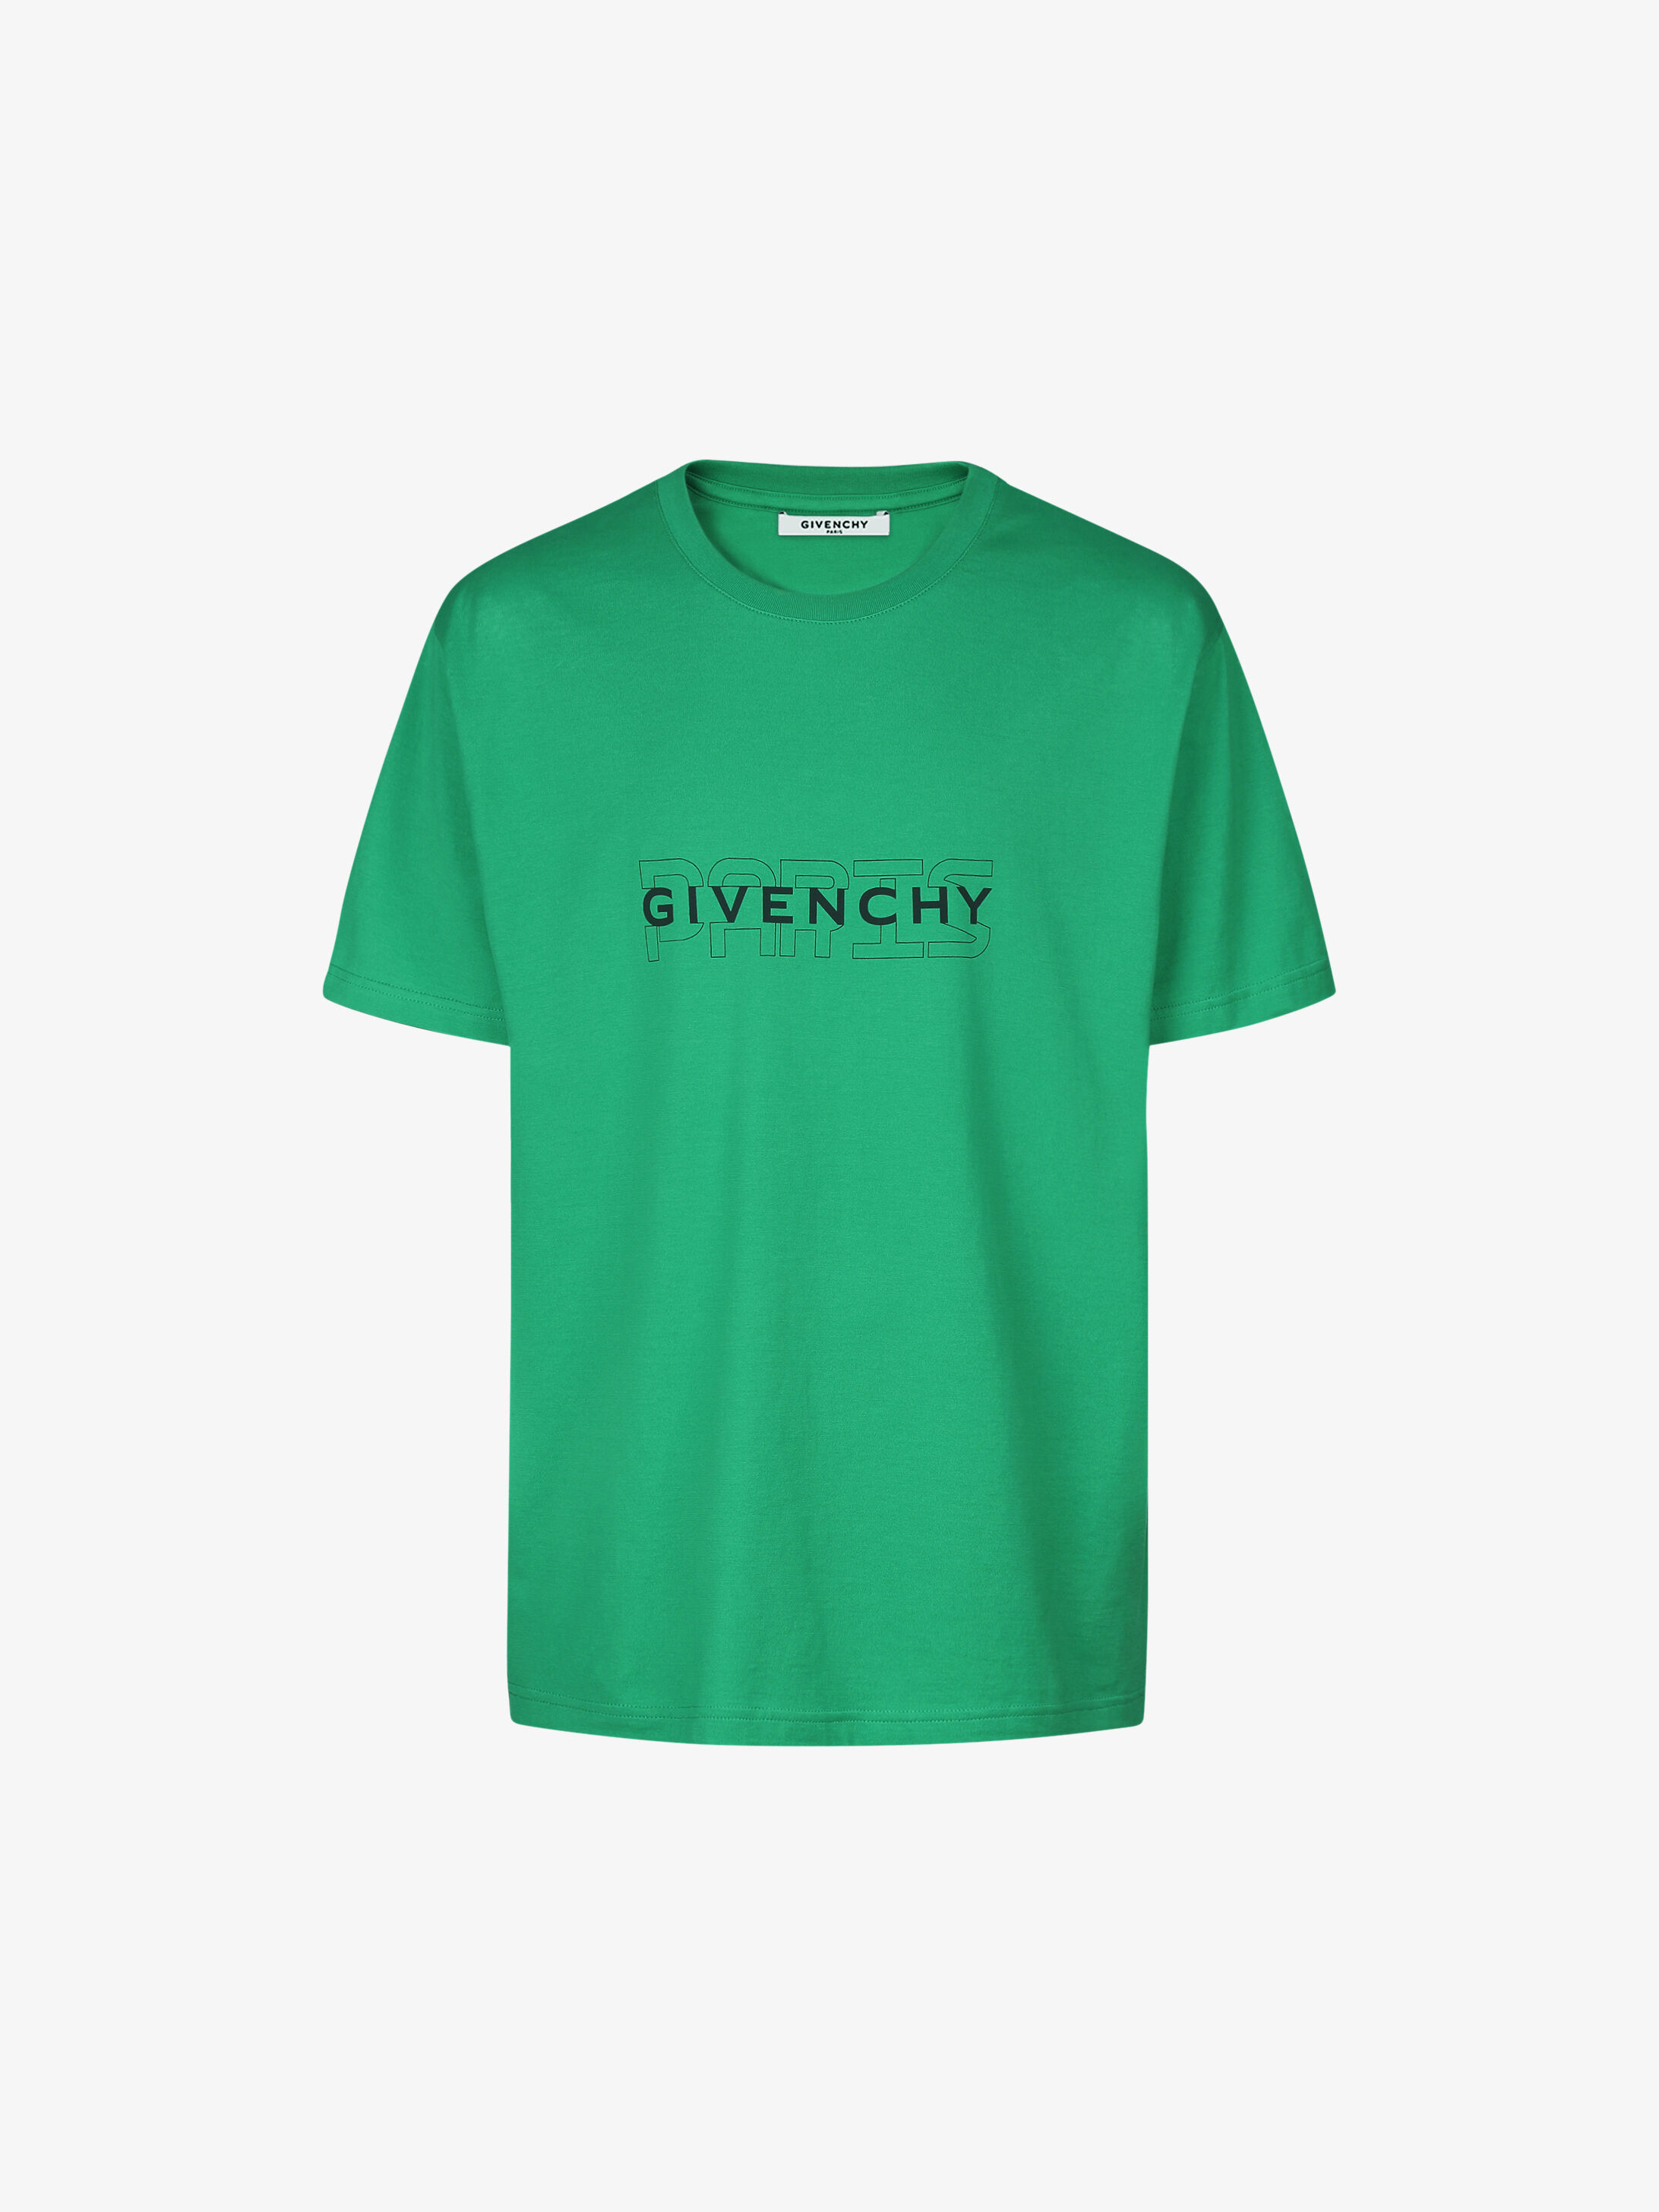 9a3c8512ec5f Men's T-Shirts collection by Givenchy. | GIVENCHY Paris